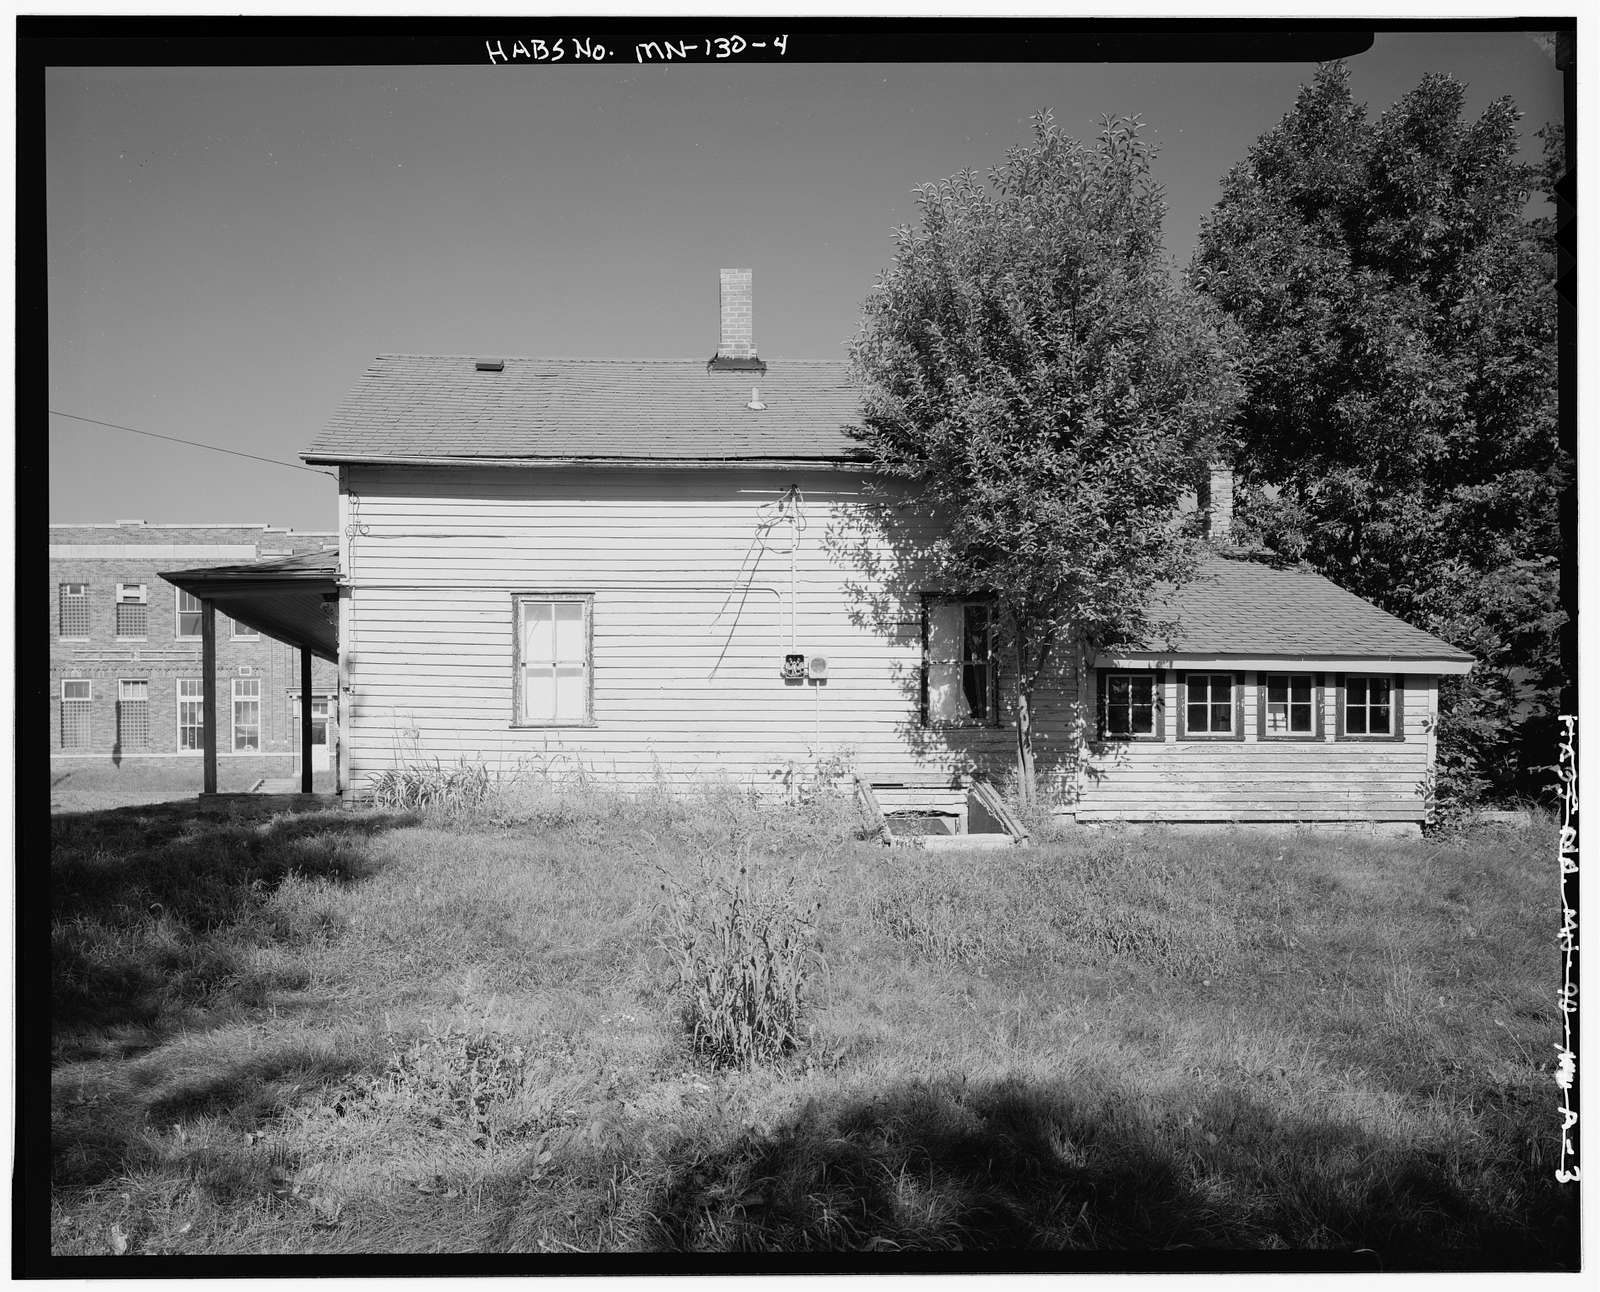 200 Lewis Avenue North (House), Watertown, Carver County, MN